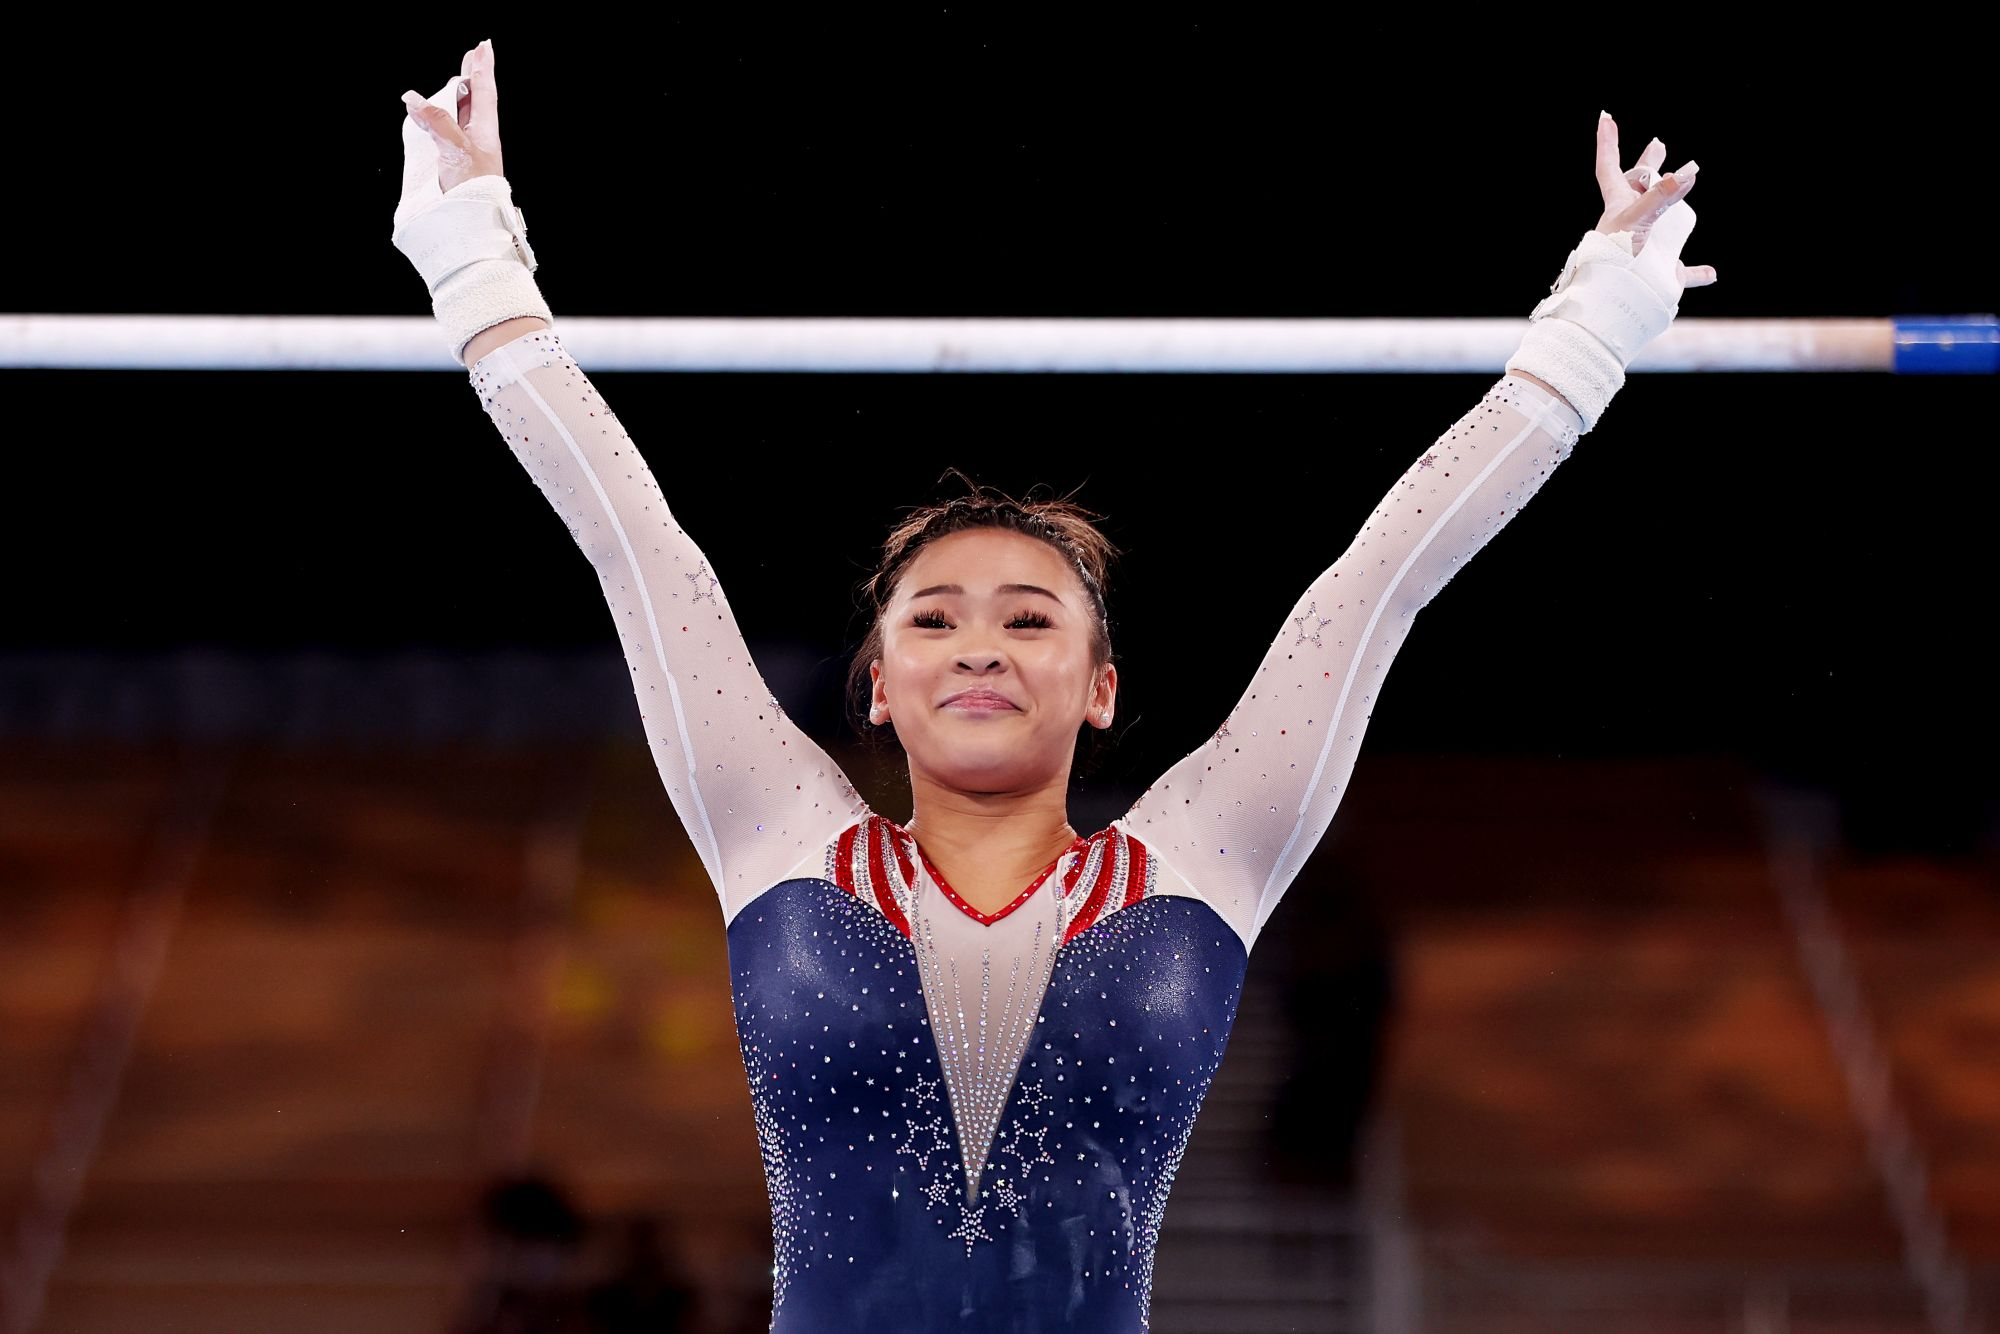 TOKYO, JAPAN - JULY 29: Sunisa Lee of Team United States reacts after competing on uneven bars during the Women's All-Around Final on day six of the Tokyo 2020 Olympic Games at Ariake Gymnastics Centre on July 29, 2021 in Tokyo, Japan. (Photo by Jamie Squire/Getty Images)